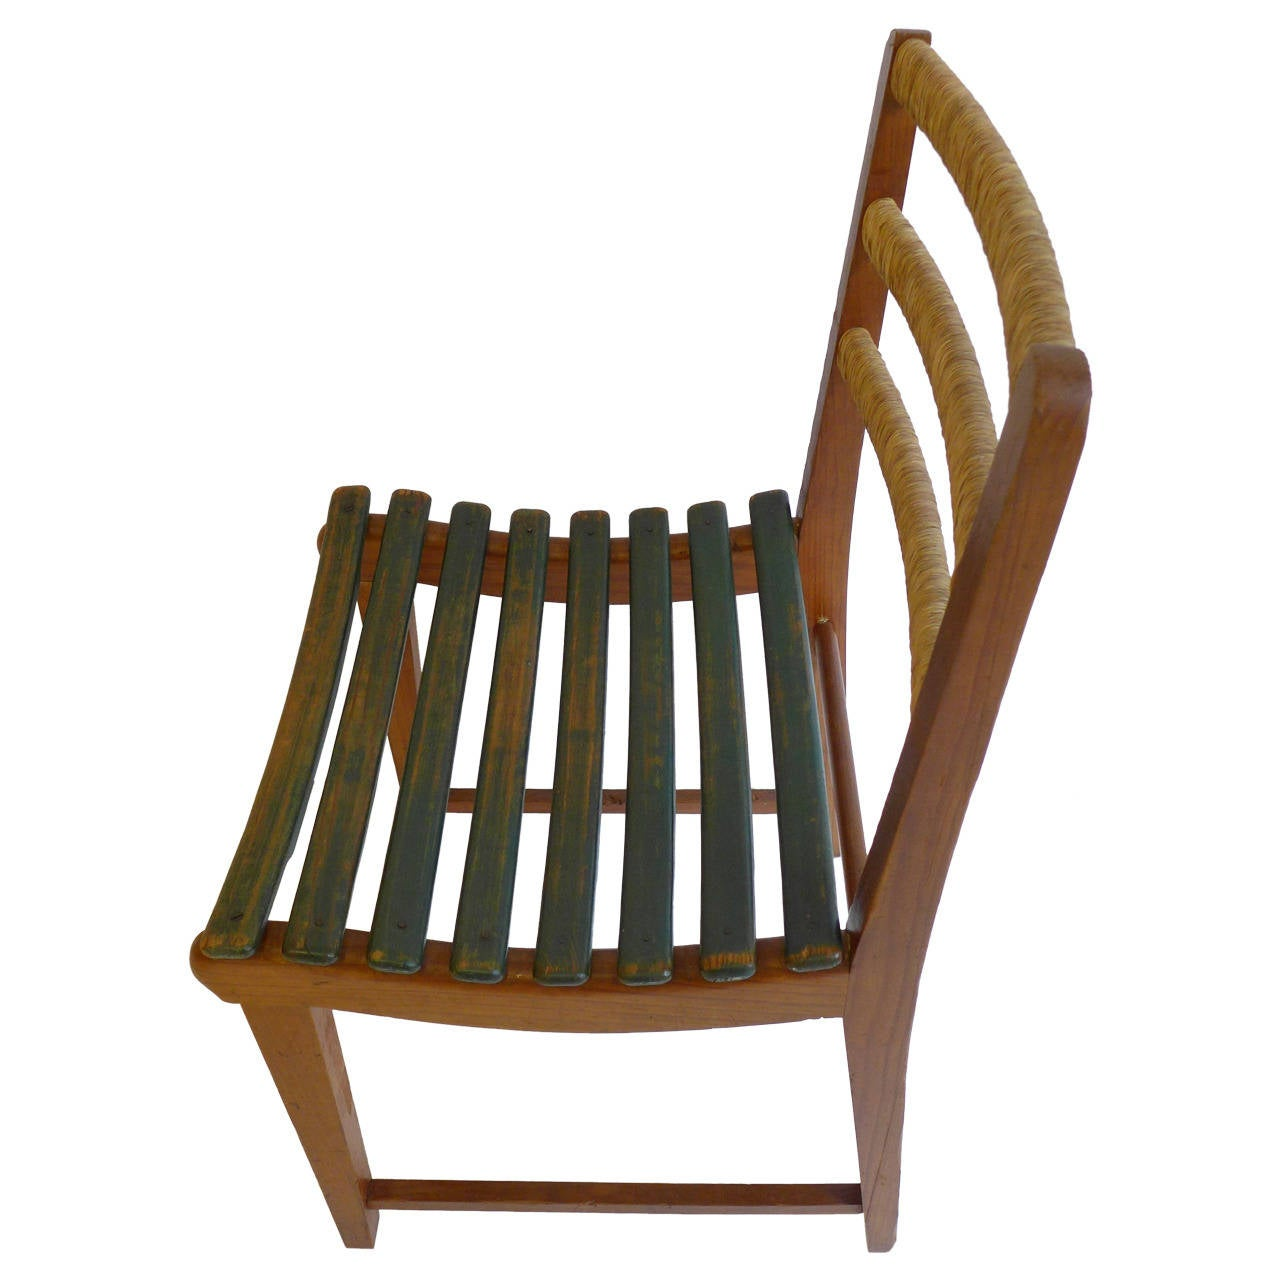 Modernist chair of pine with curved and painted wood slats and rush-wrapped back rails. Designed by Michael van Beuren for his company, Domus, and produced in Mexico, circa 1947. Born in New York City, van Beuren (1911-2004) studied at the Bauhaus